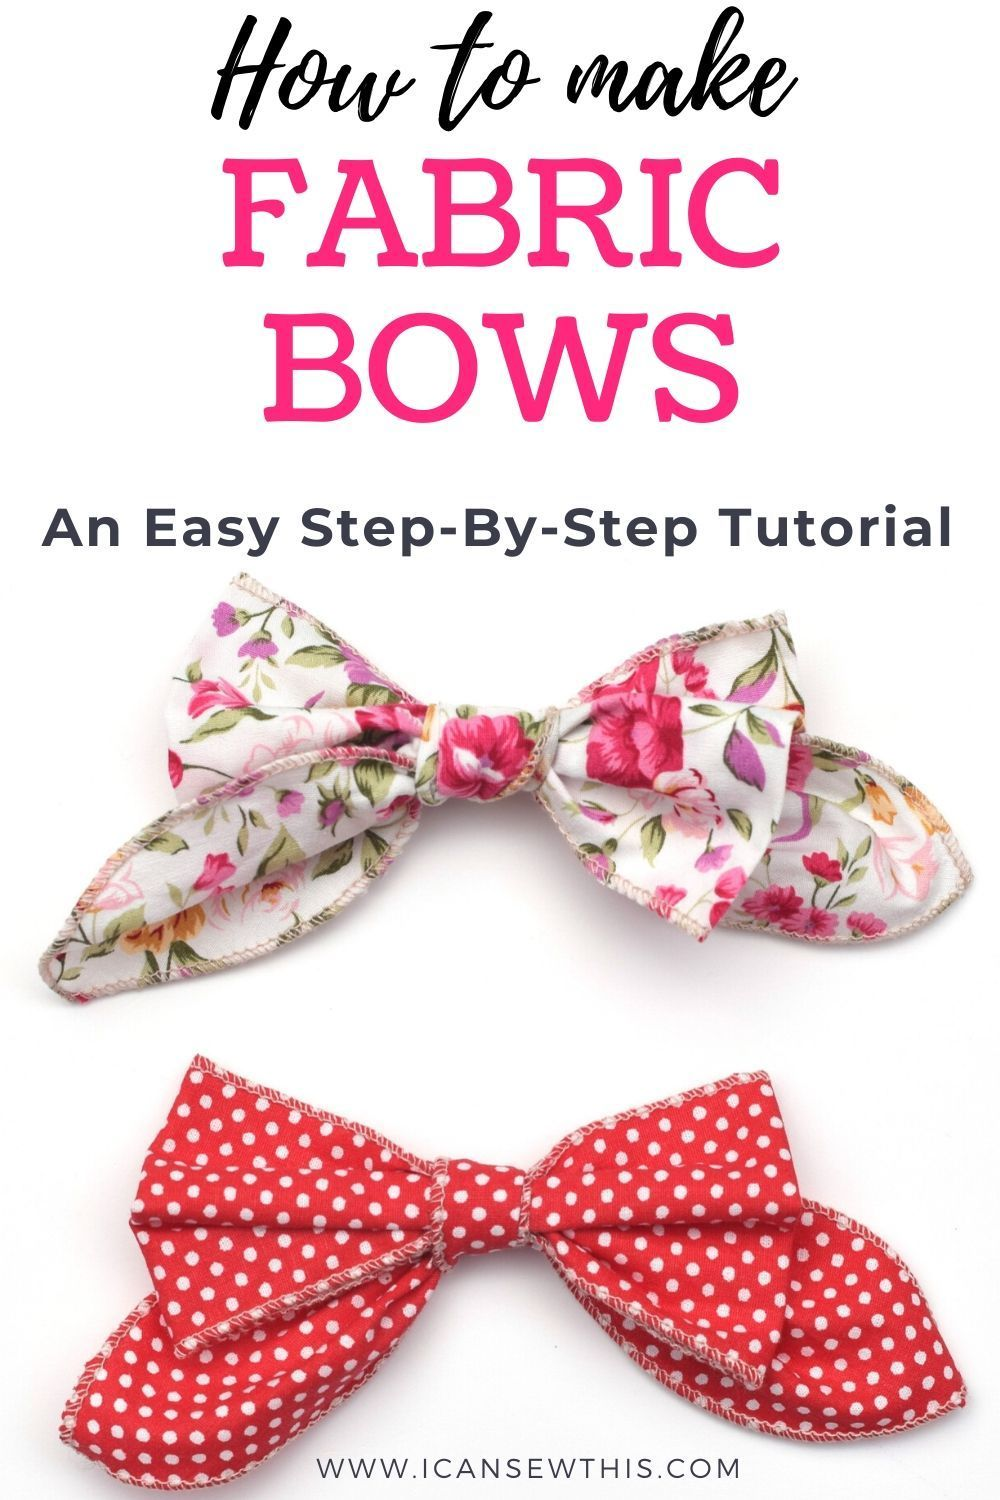 How to make fabric bows tutorial - I Can Sew This